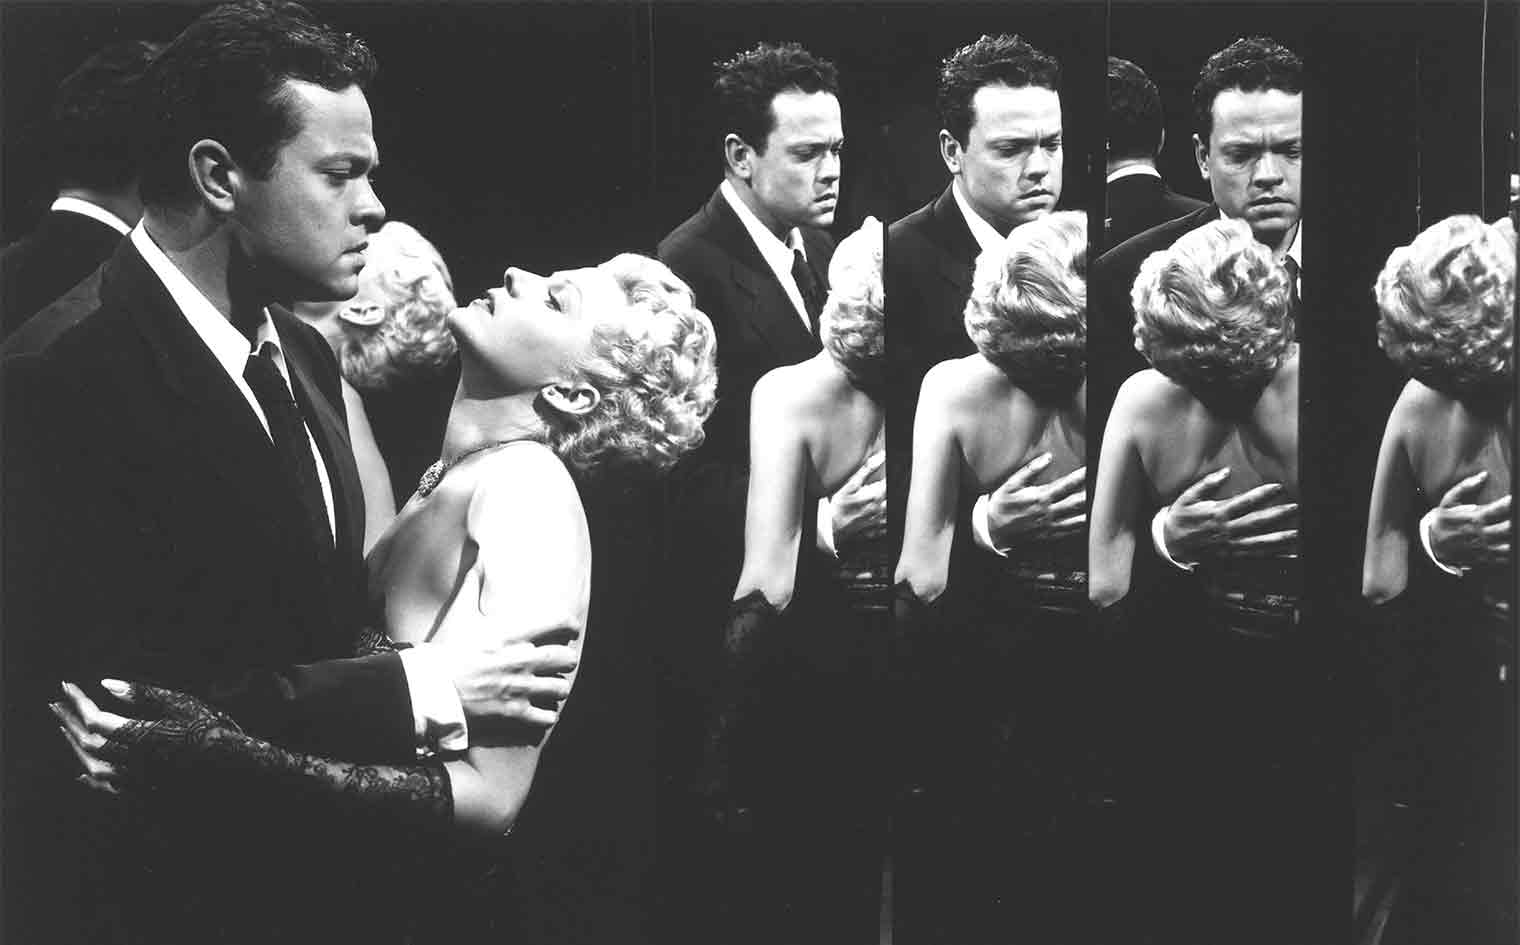 THE LADY FROM SHANGHAI and SCARLET STREET